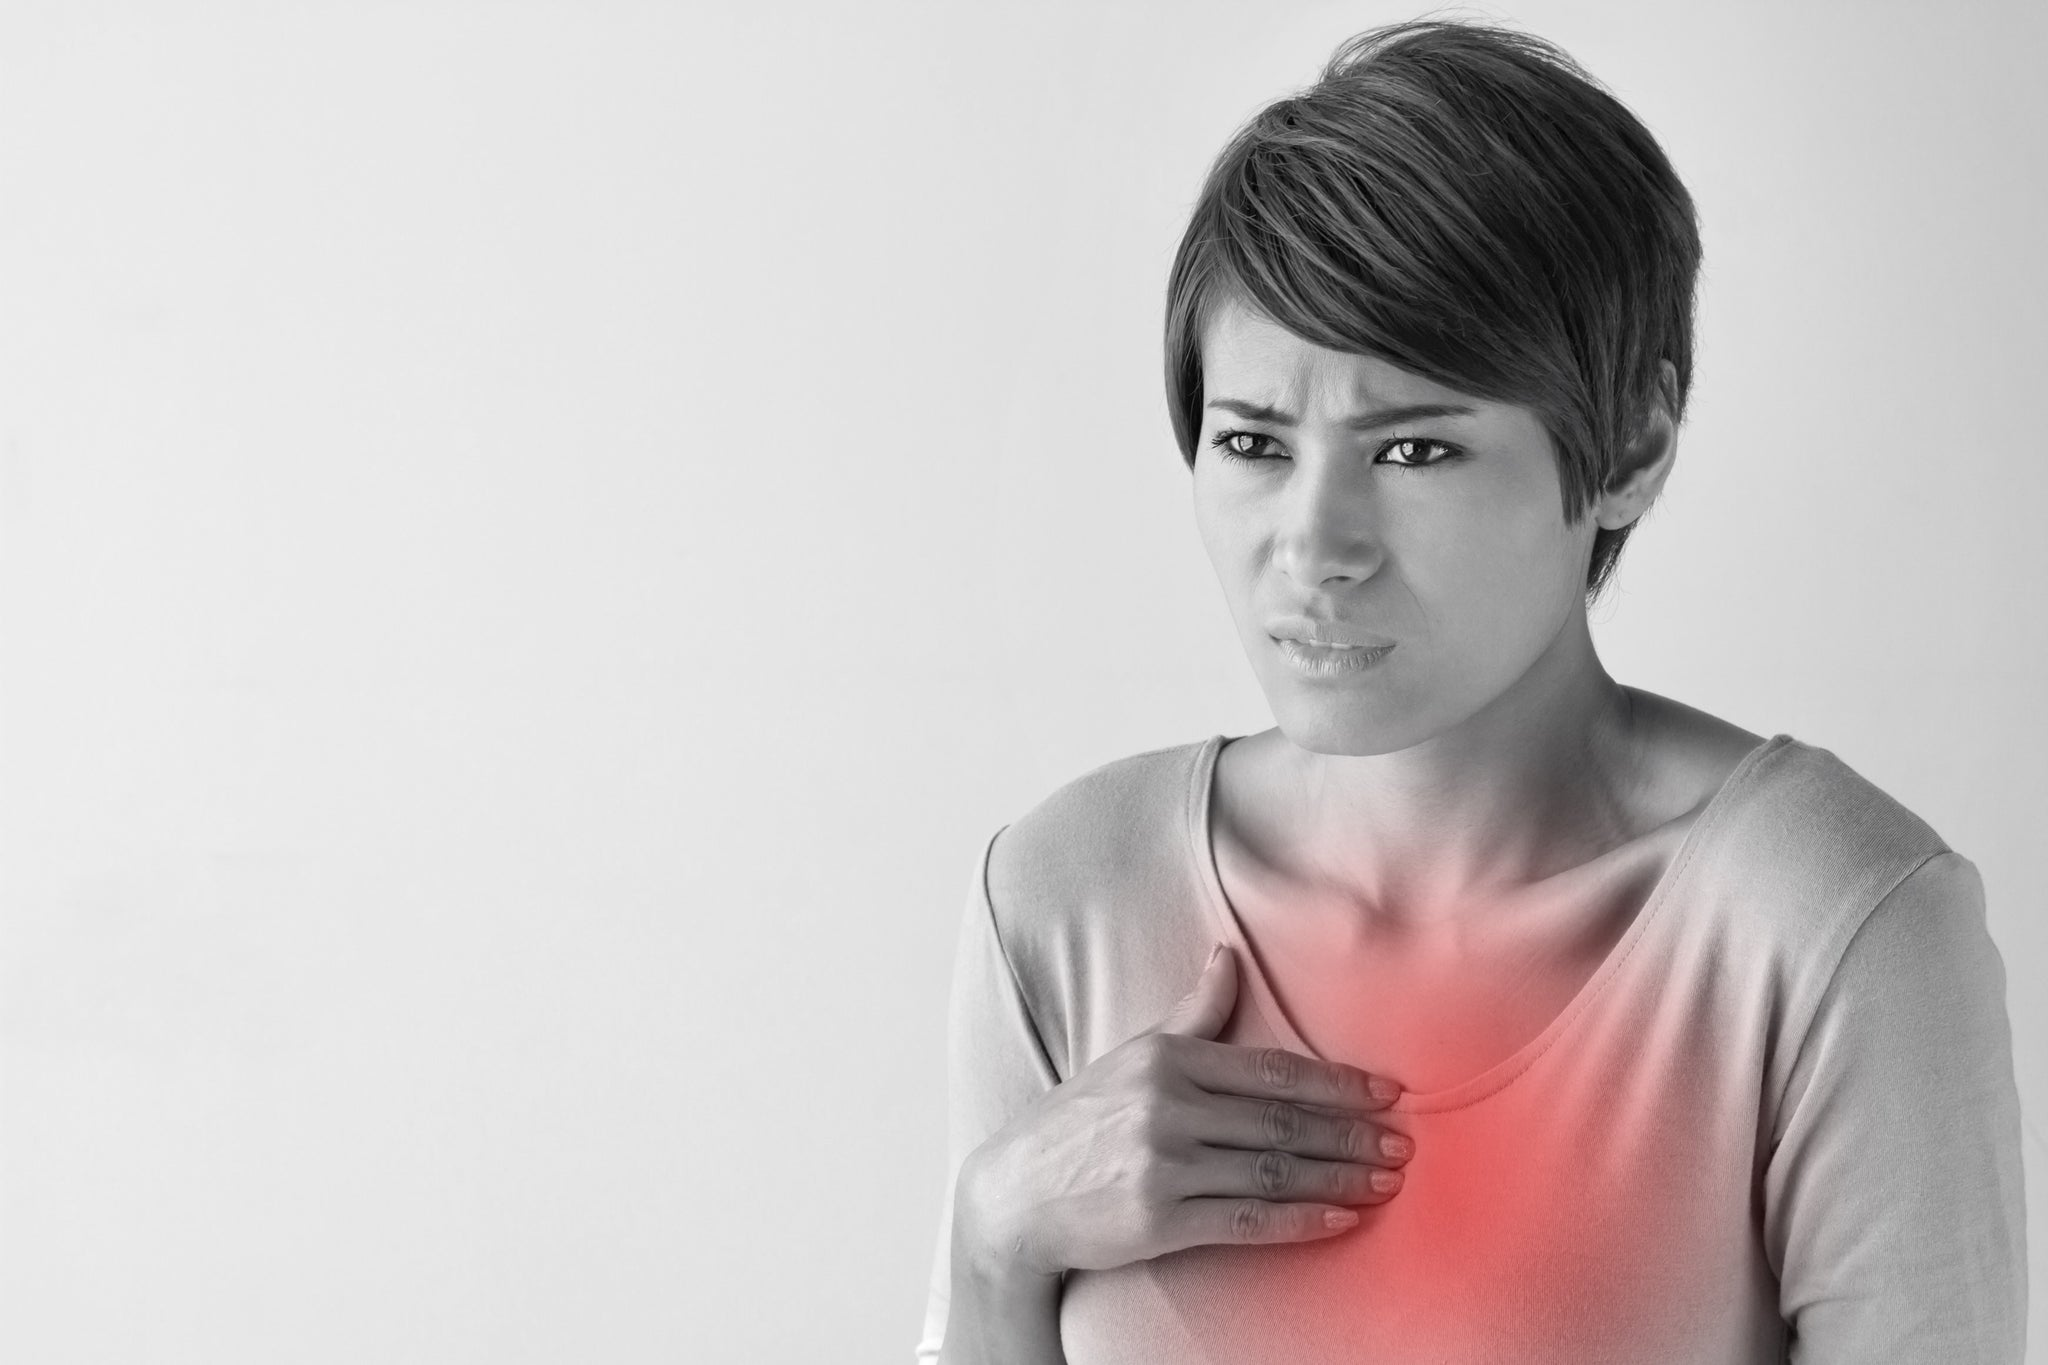 A woman with her hand placed on her chest in pain